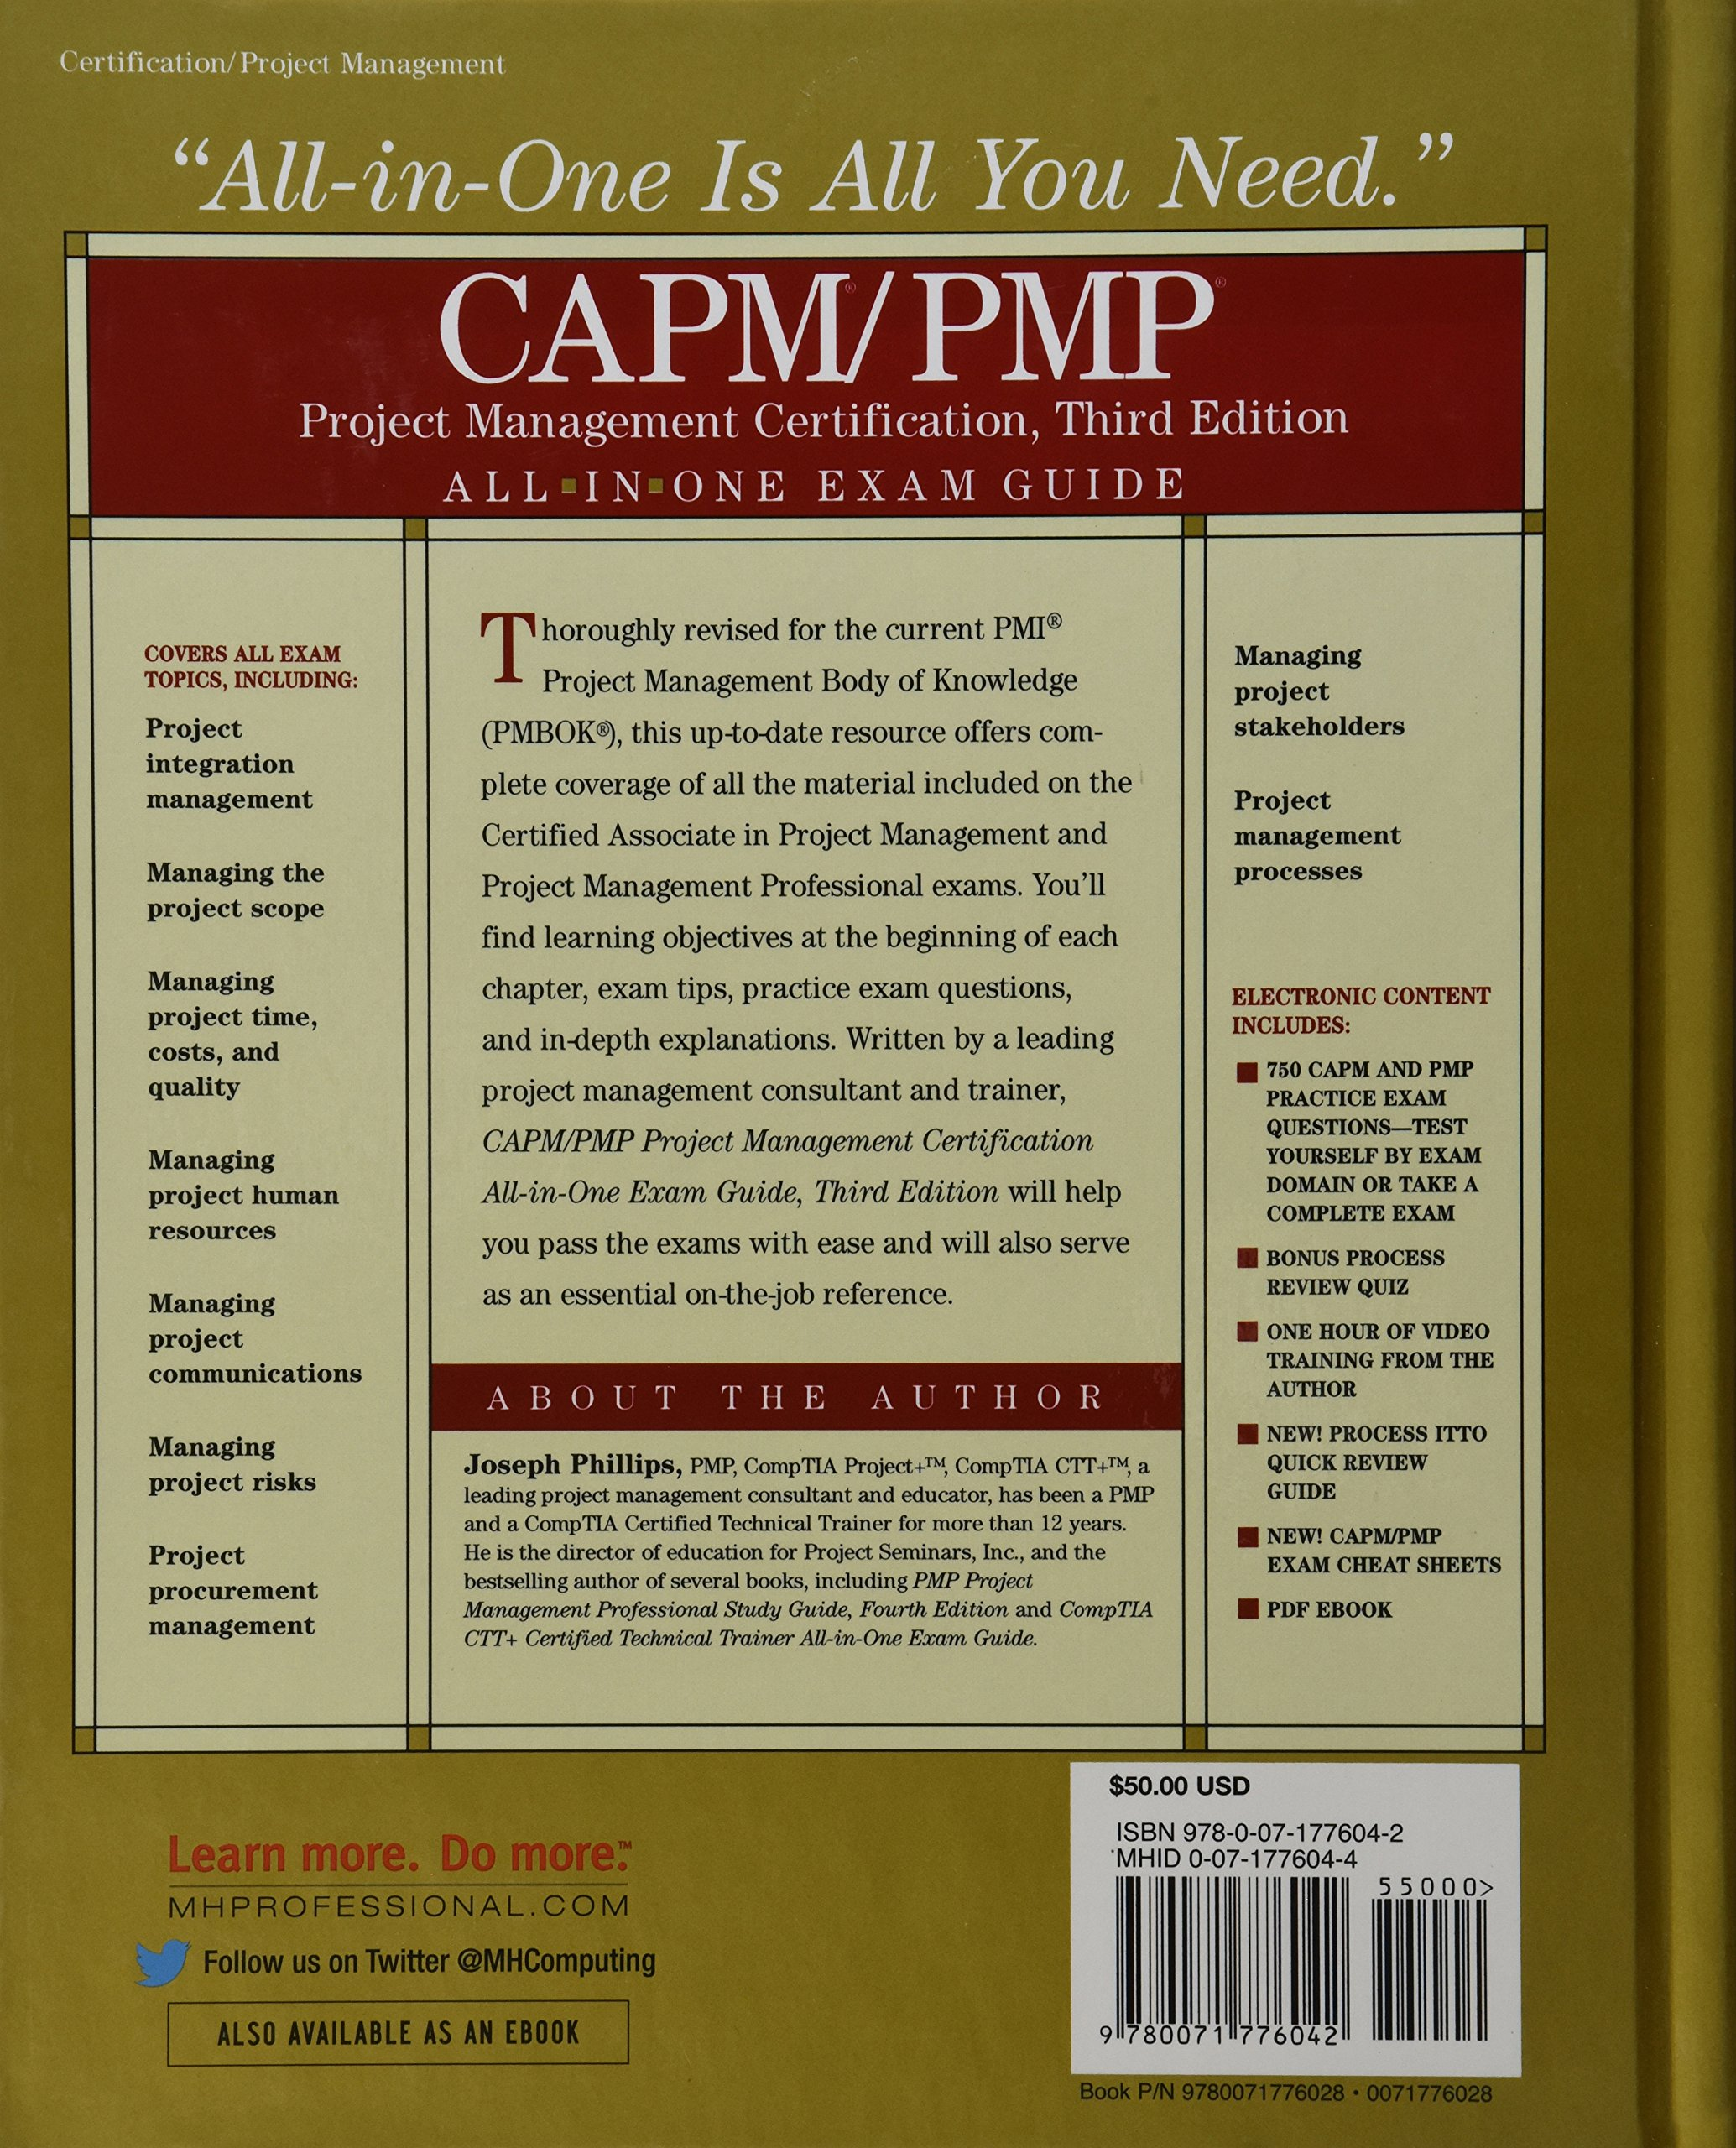 Amazon capmpmp project management certification all in one amazon capmpmp project management certification all in one exam guide third edition 9780071776042 joseph phillips books xflitez Gallery